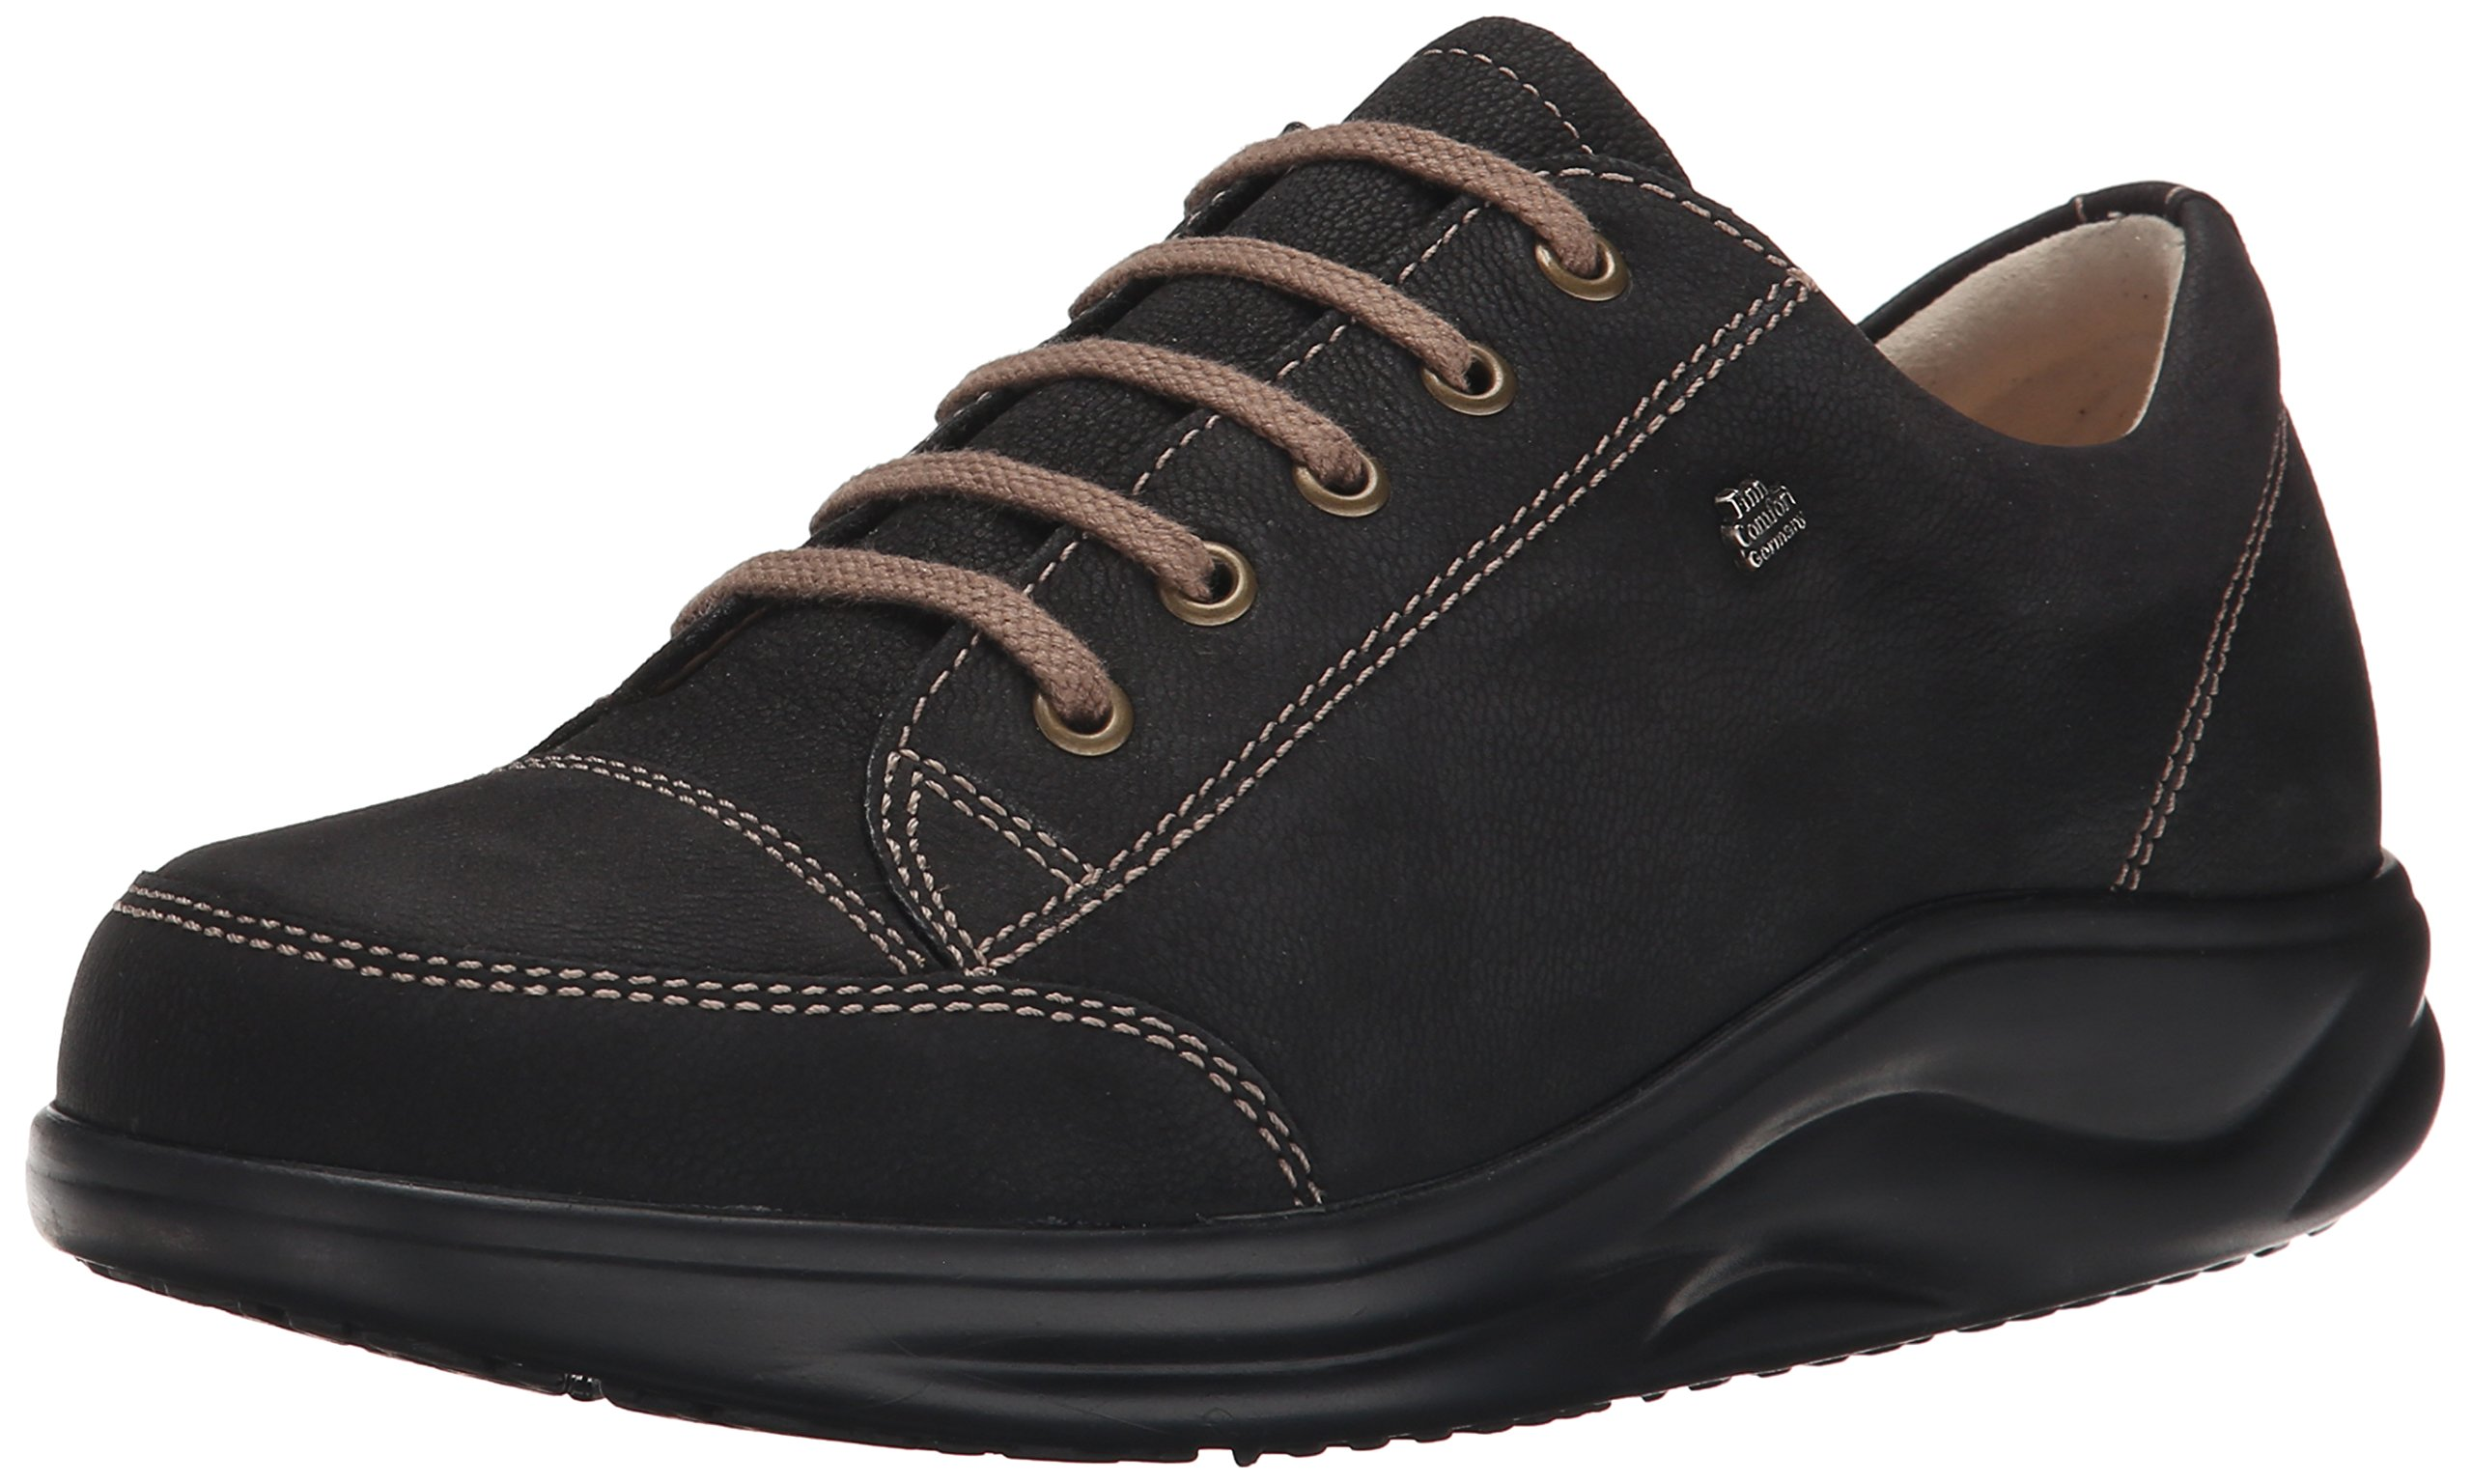 Finn Comfort Women's Ikebukuro Oxford,Black Rodeobuk,9 M US/ 6.5 UK